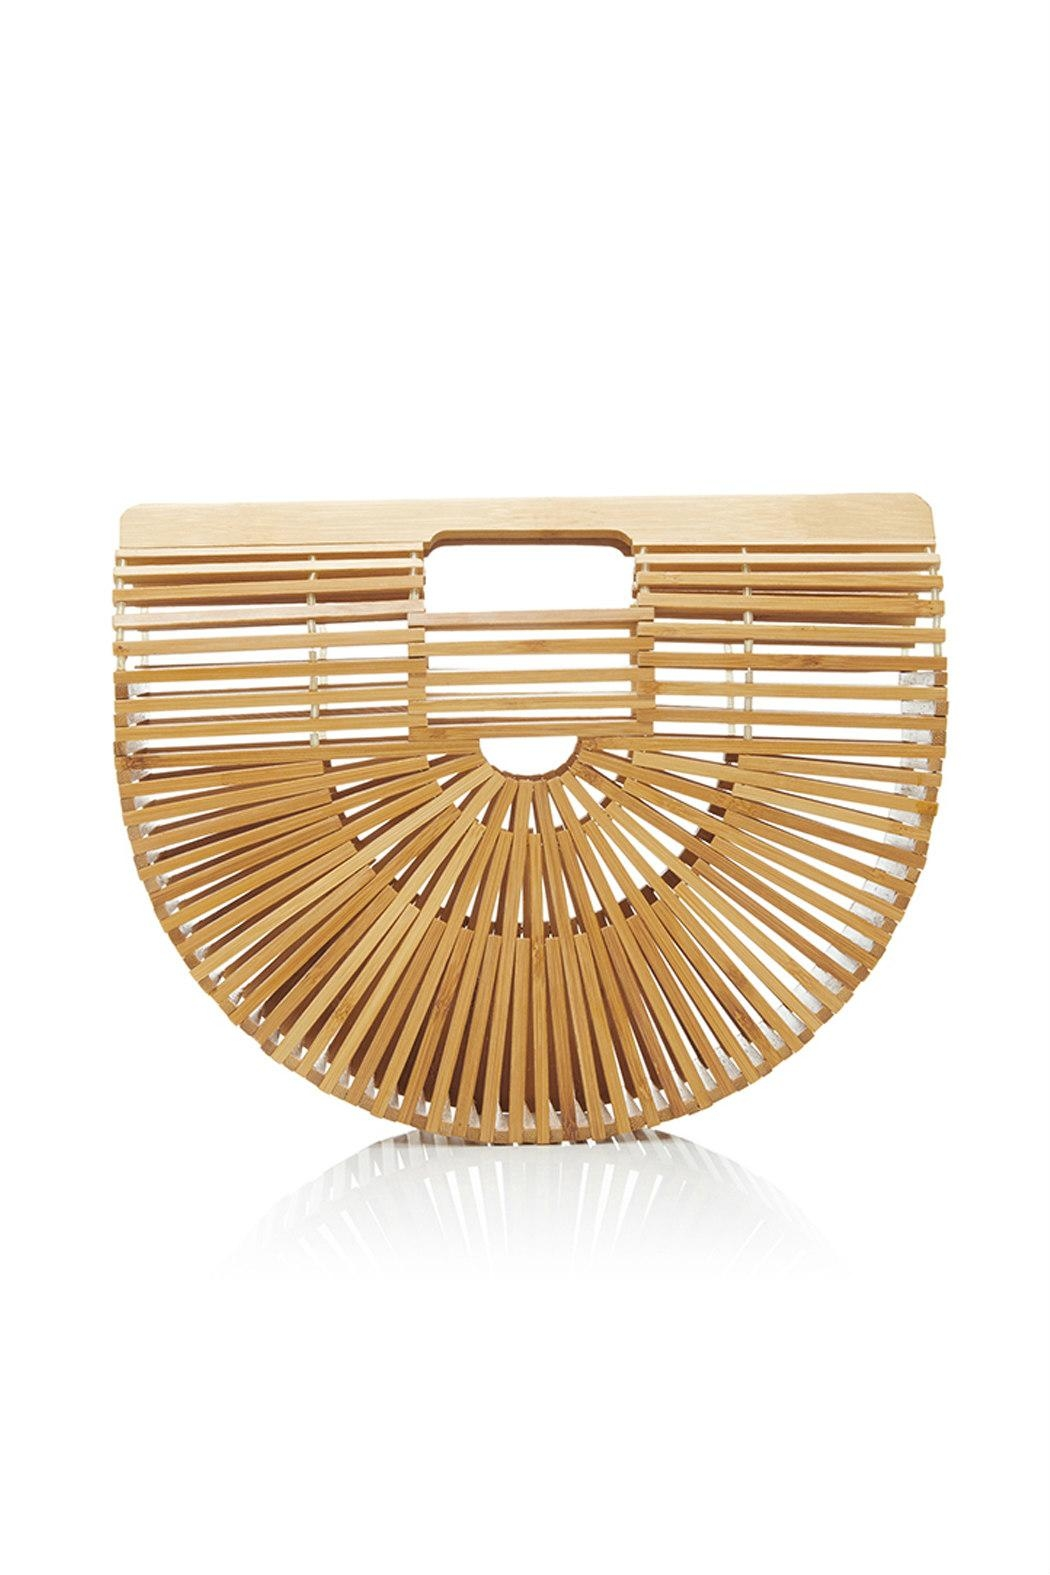 Catherine K Collections Bamboo Half Moon Clutch - Main Image